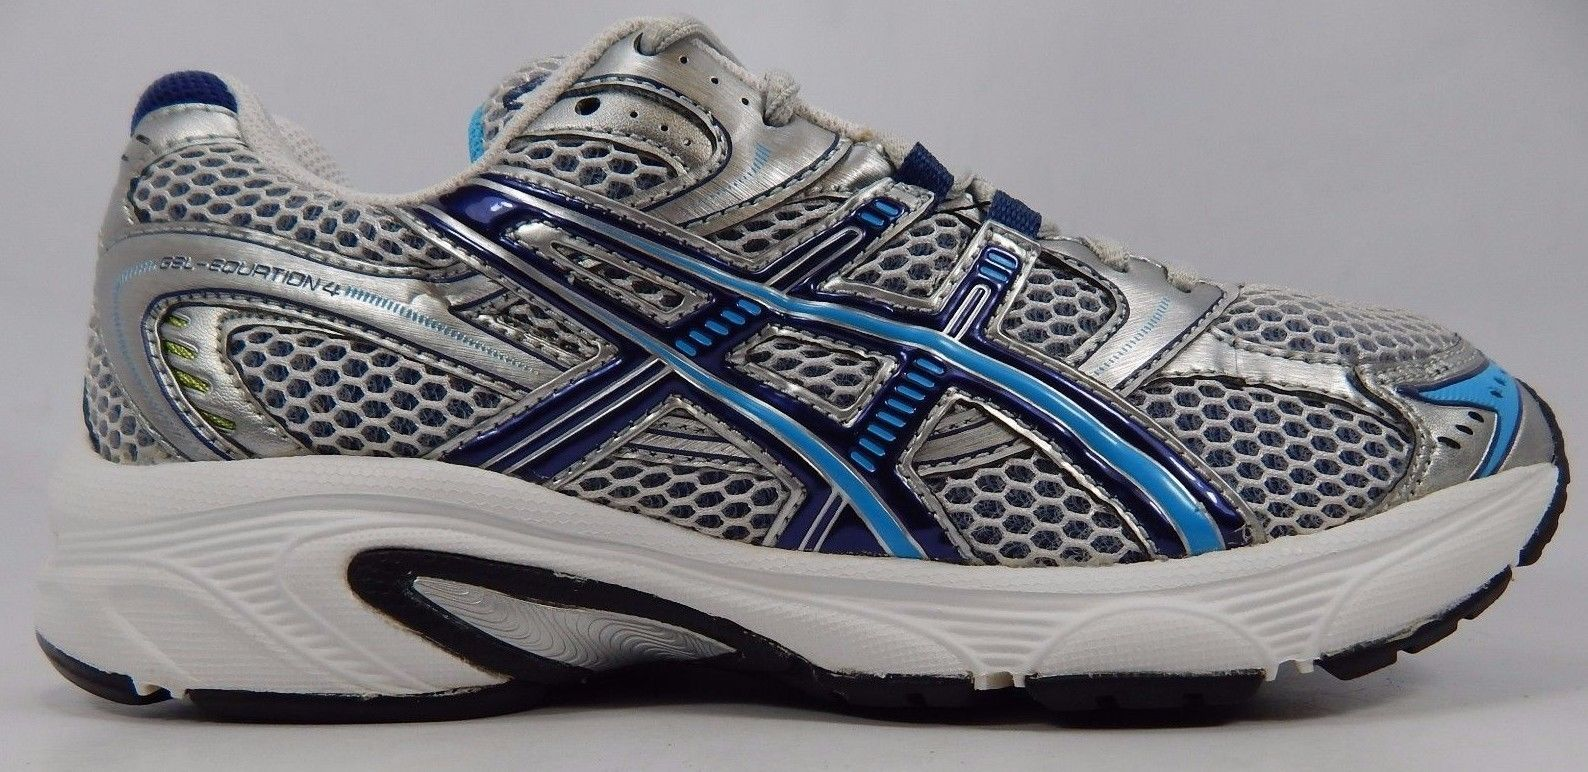 Asics Gel Equation 4 Women's Running Shoes Size US 7.5 M (B) EU 39 Silver T0F8N